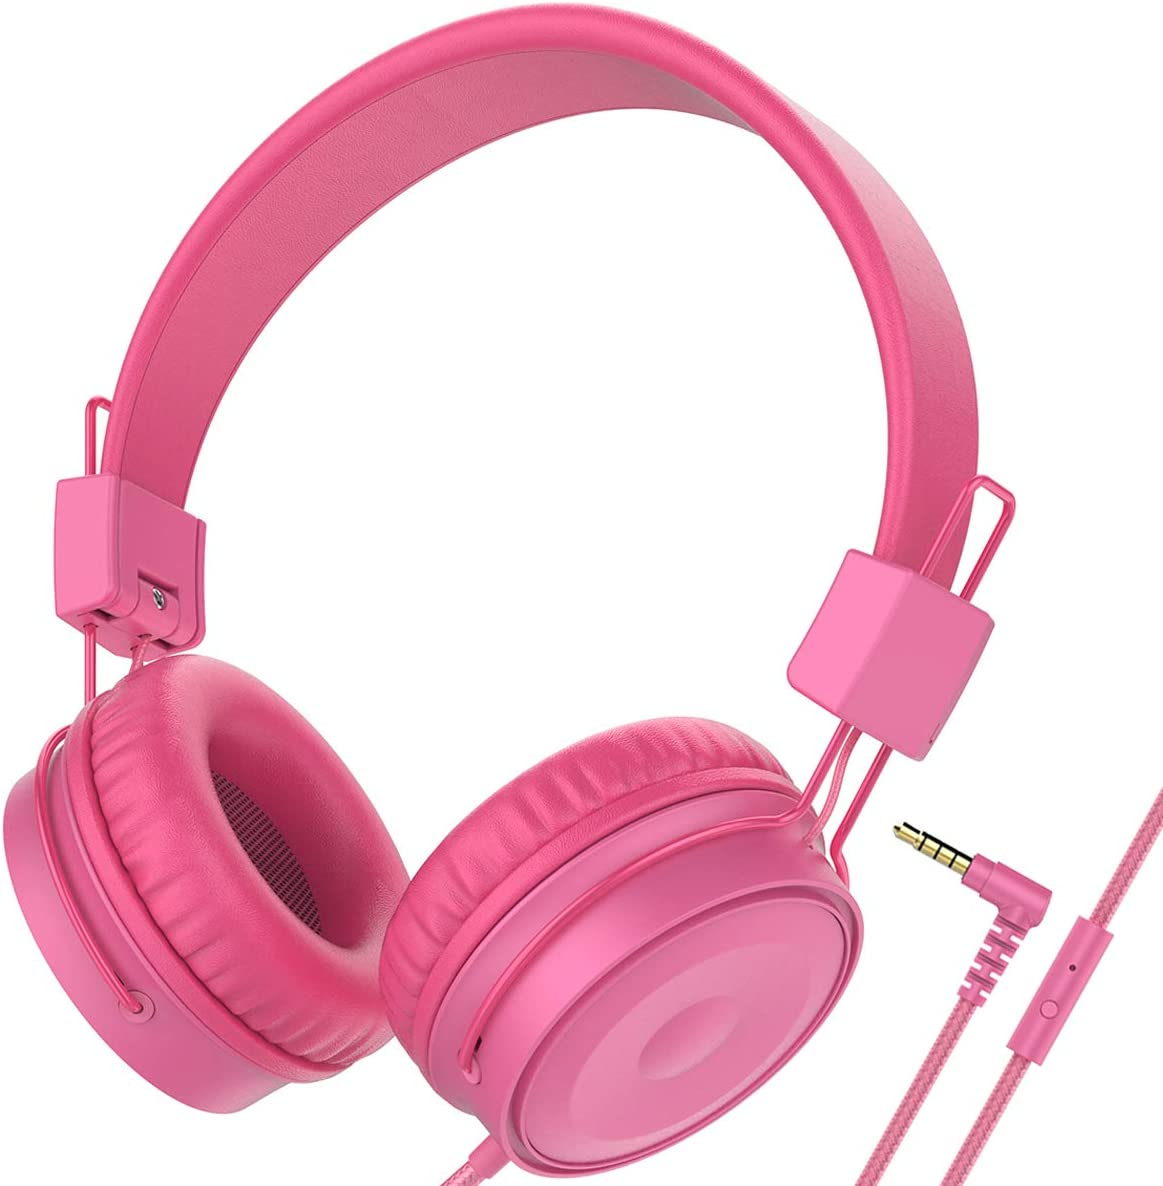 Baseman Wired Headphones Lightweight Foldable Adjustable Over Ear 3.5 mm Headphones with Microphone for Kids Boys Girls Volume Control On Ear Headset Earphone for Music TV Computer Cell Phone Pink